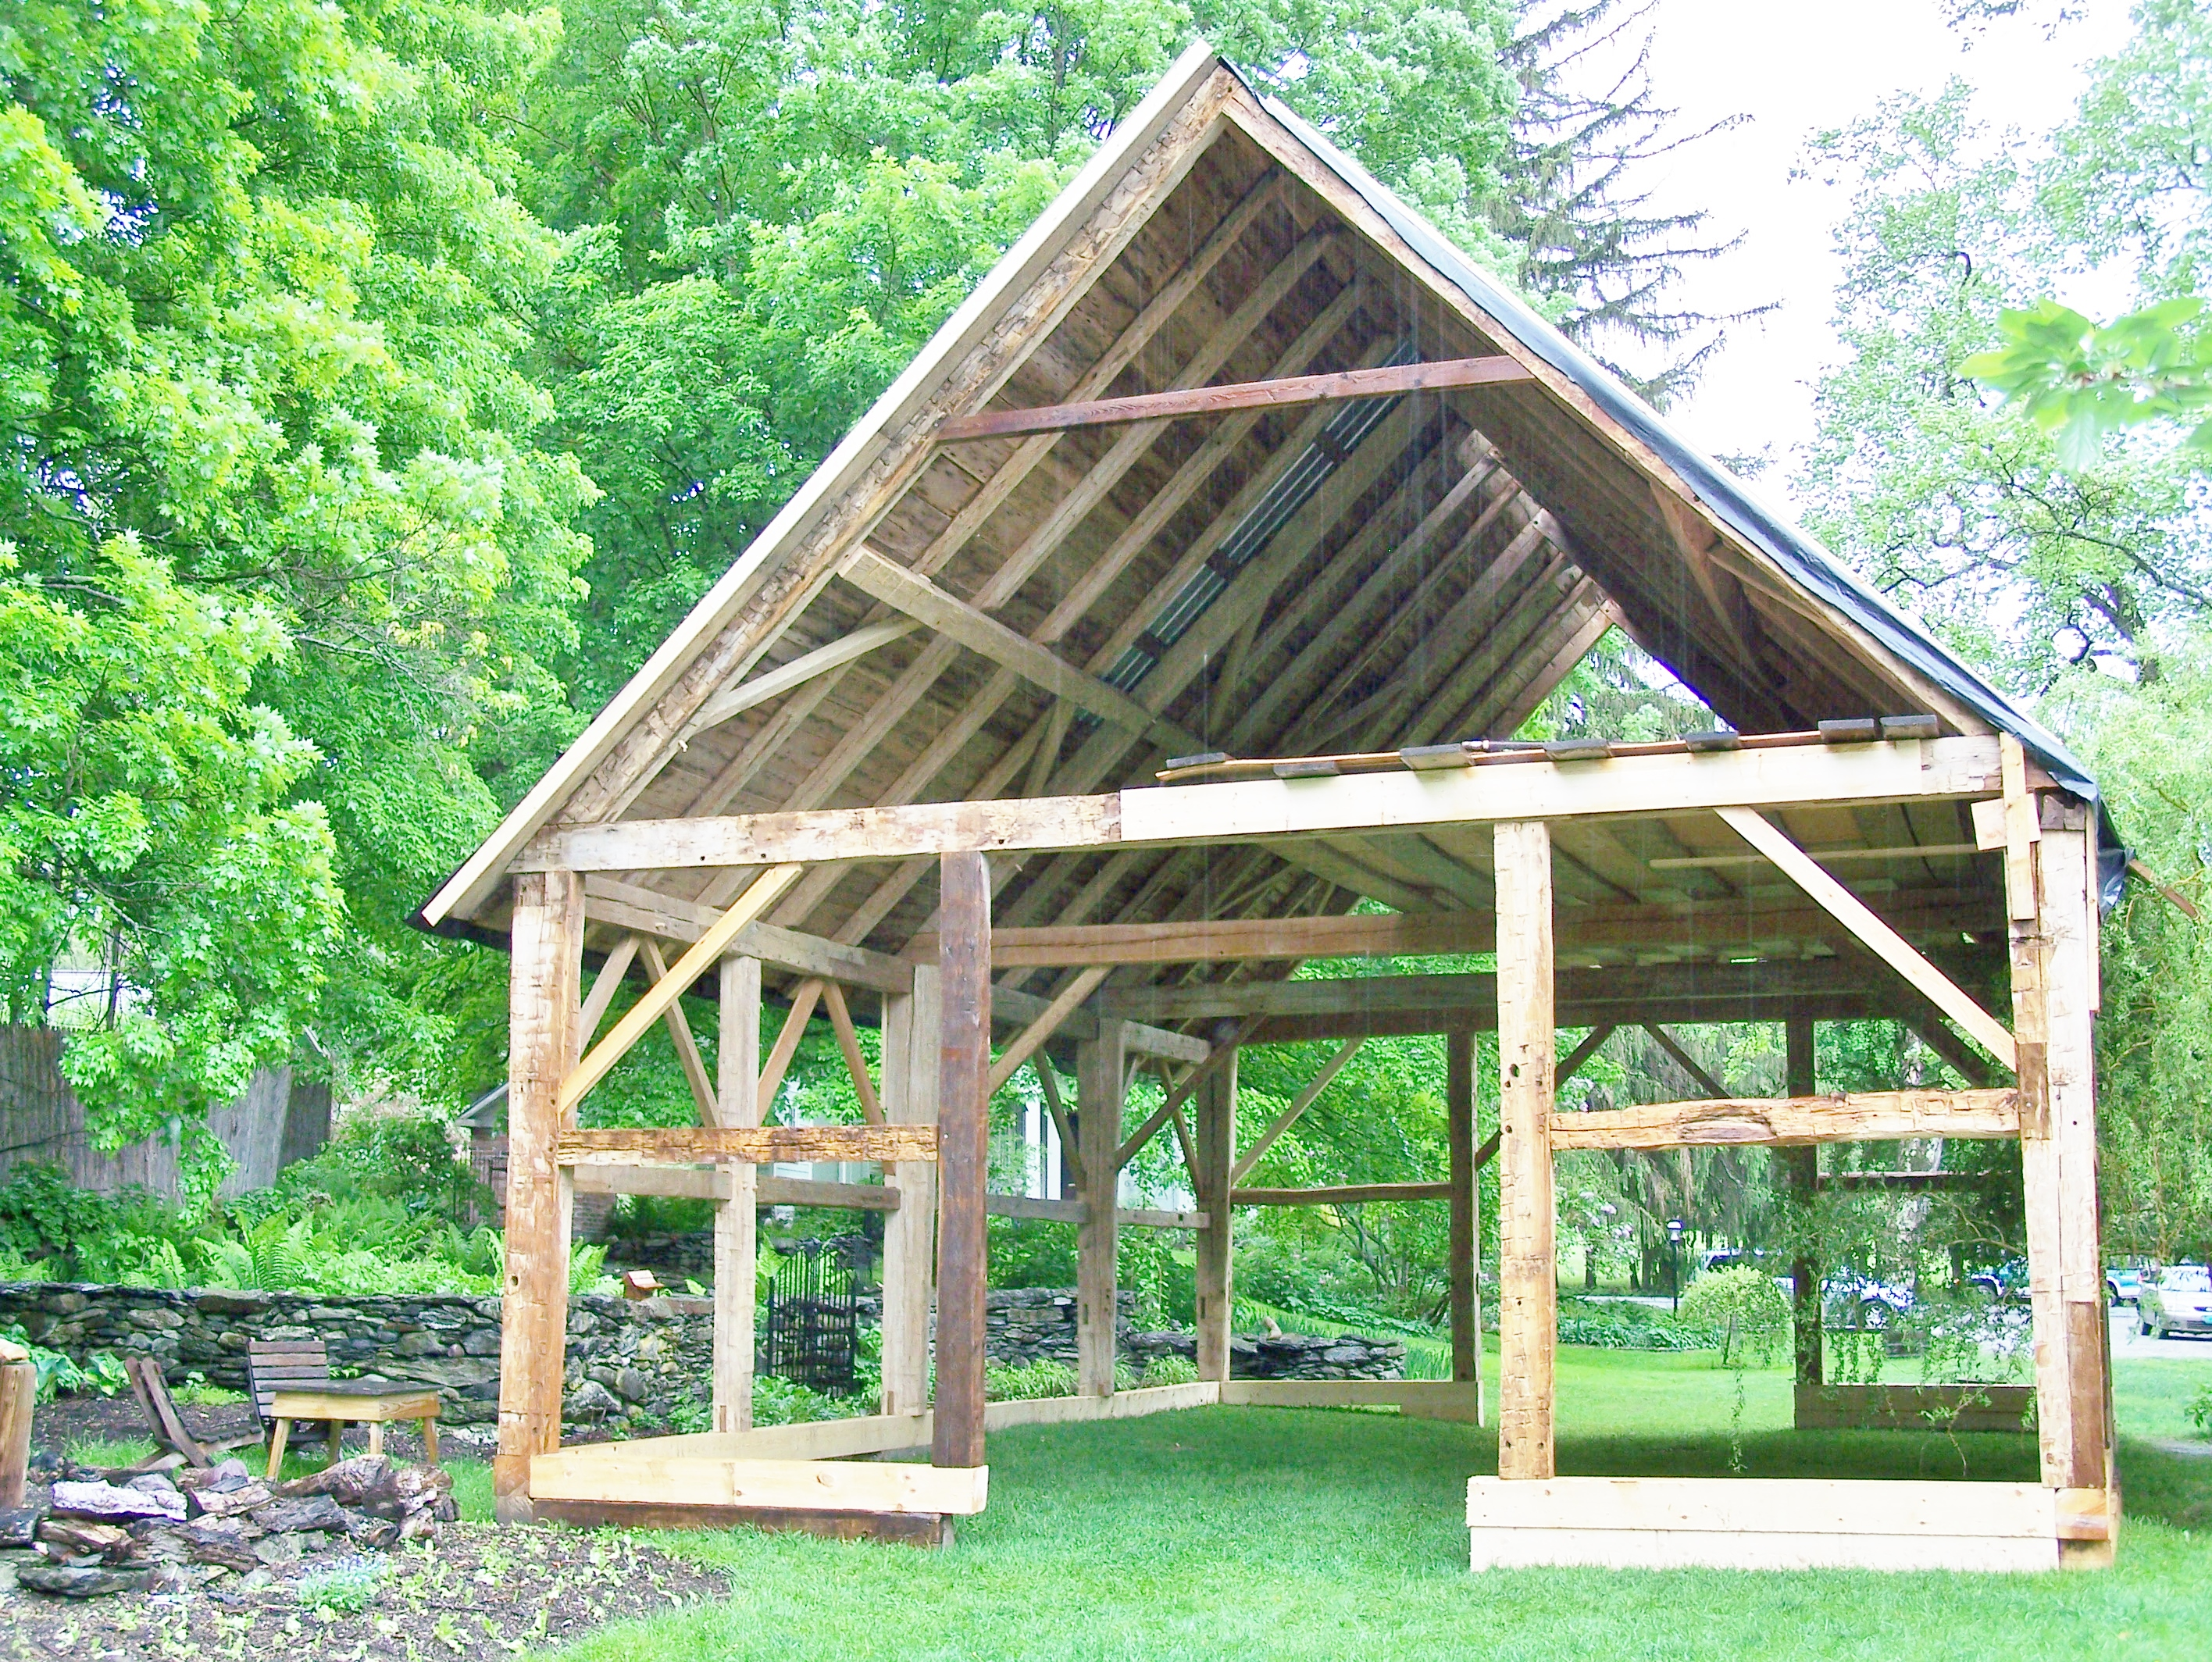 restored timber frame with roof boards